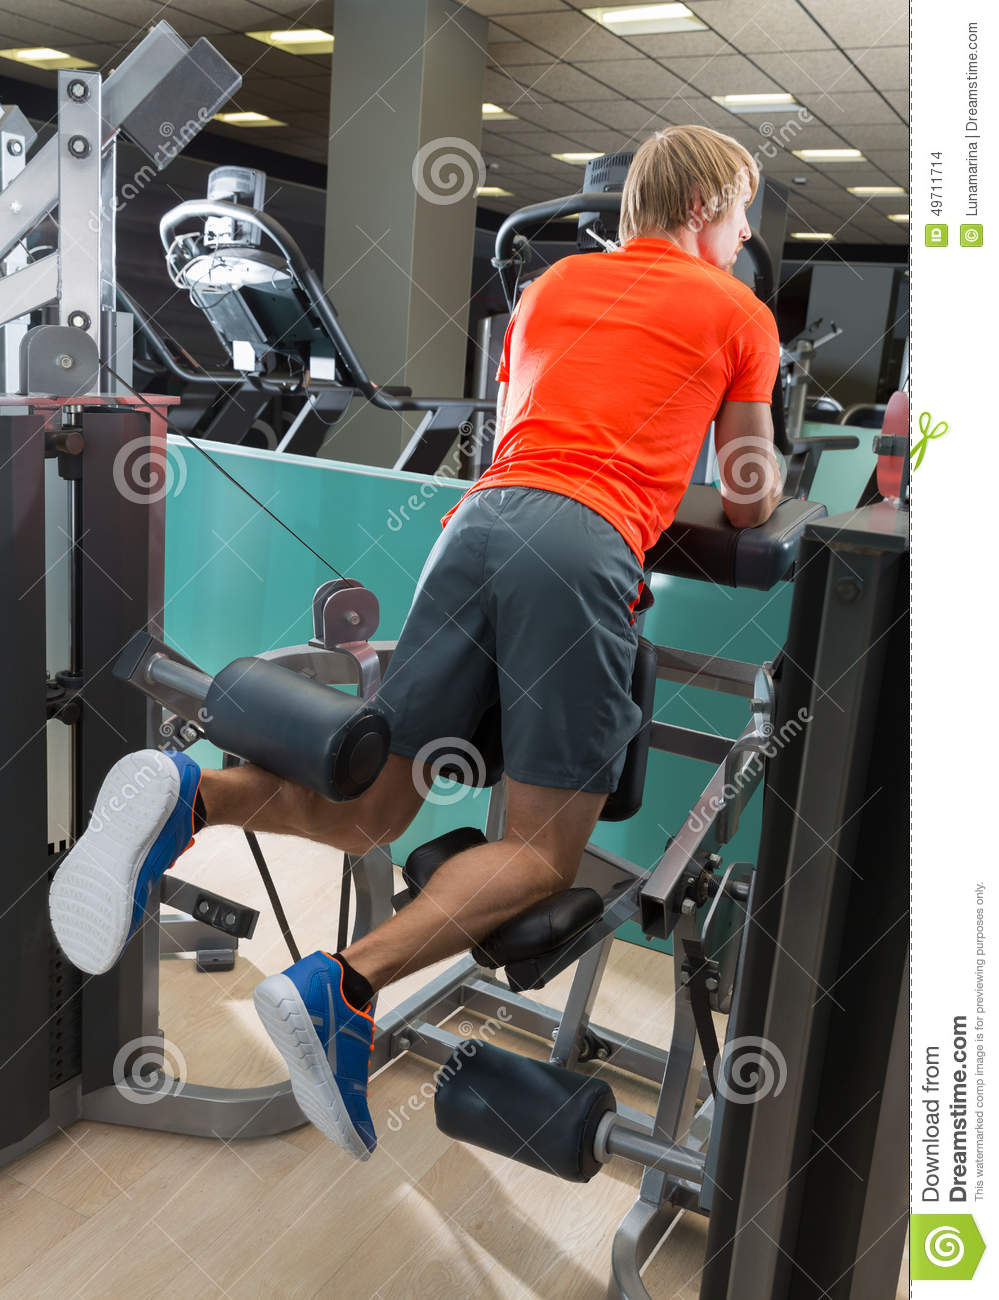 Kneeling Leg Femoral Curl Man At Gym Stock Photo - Image of